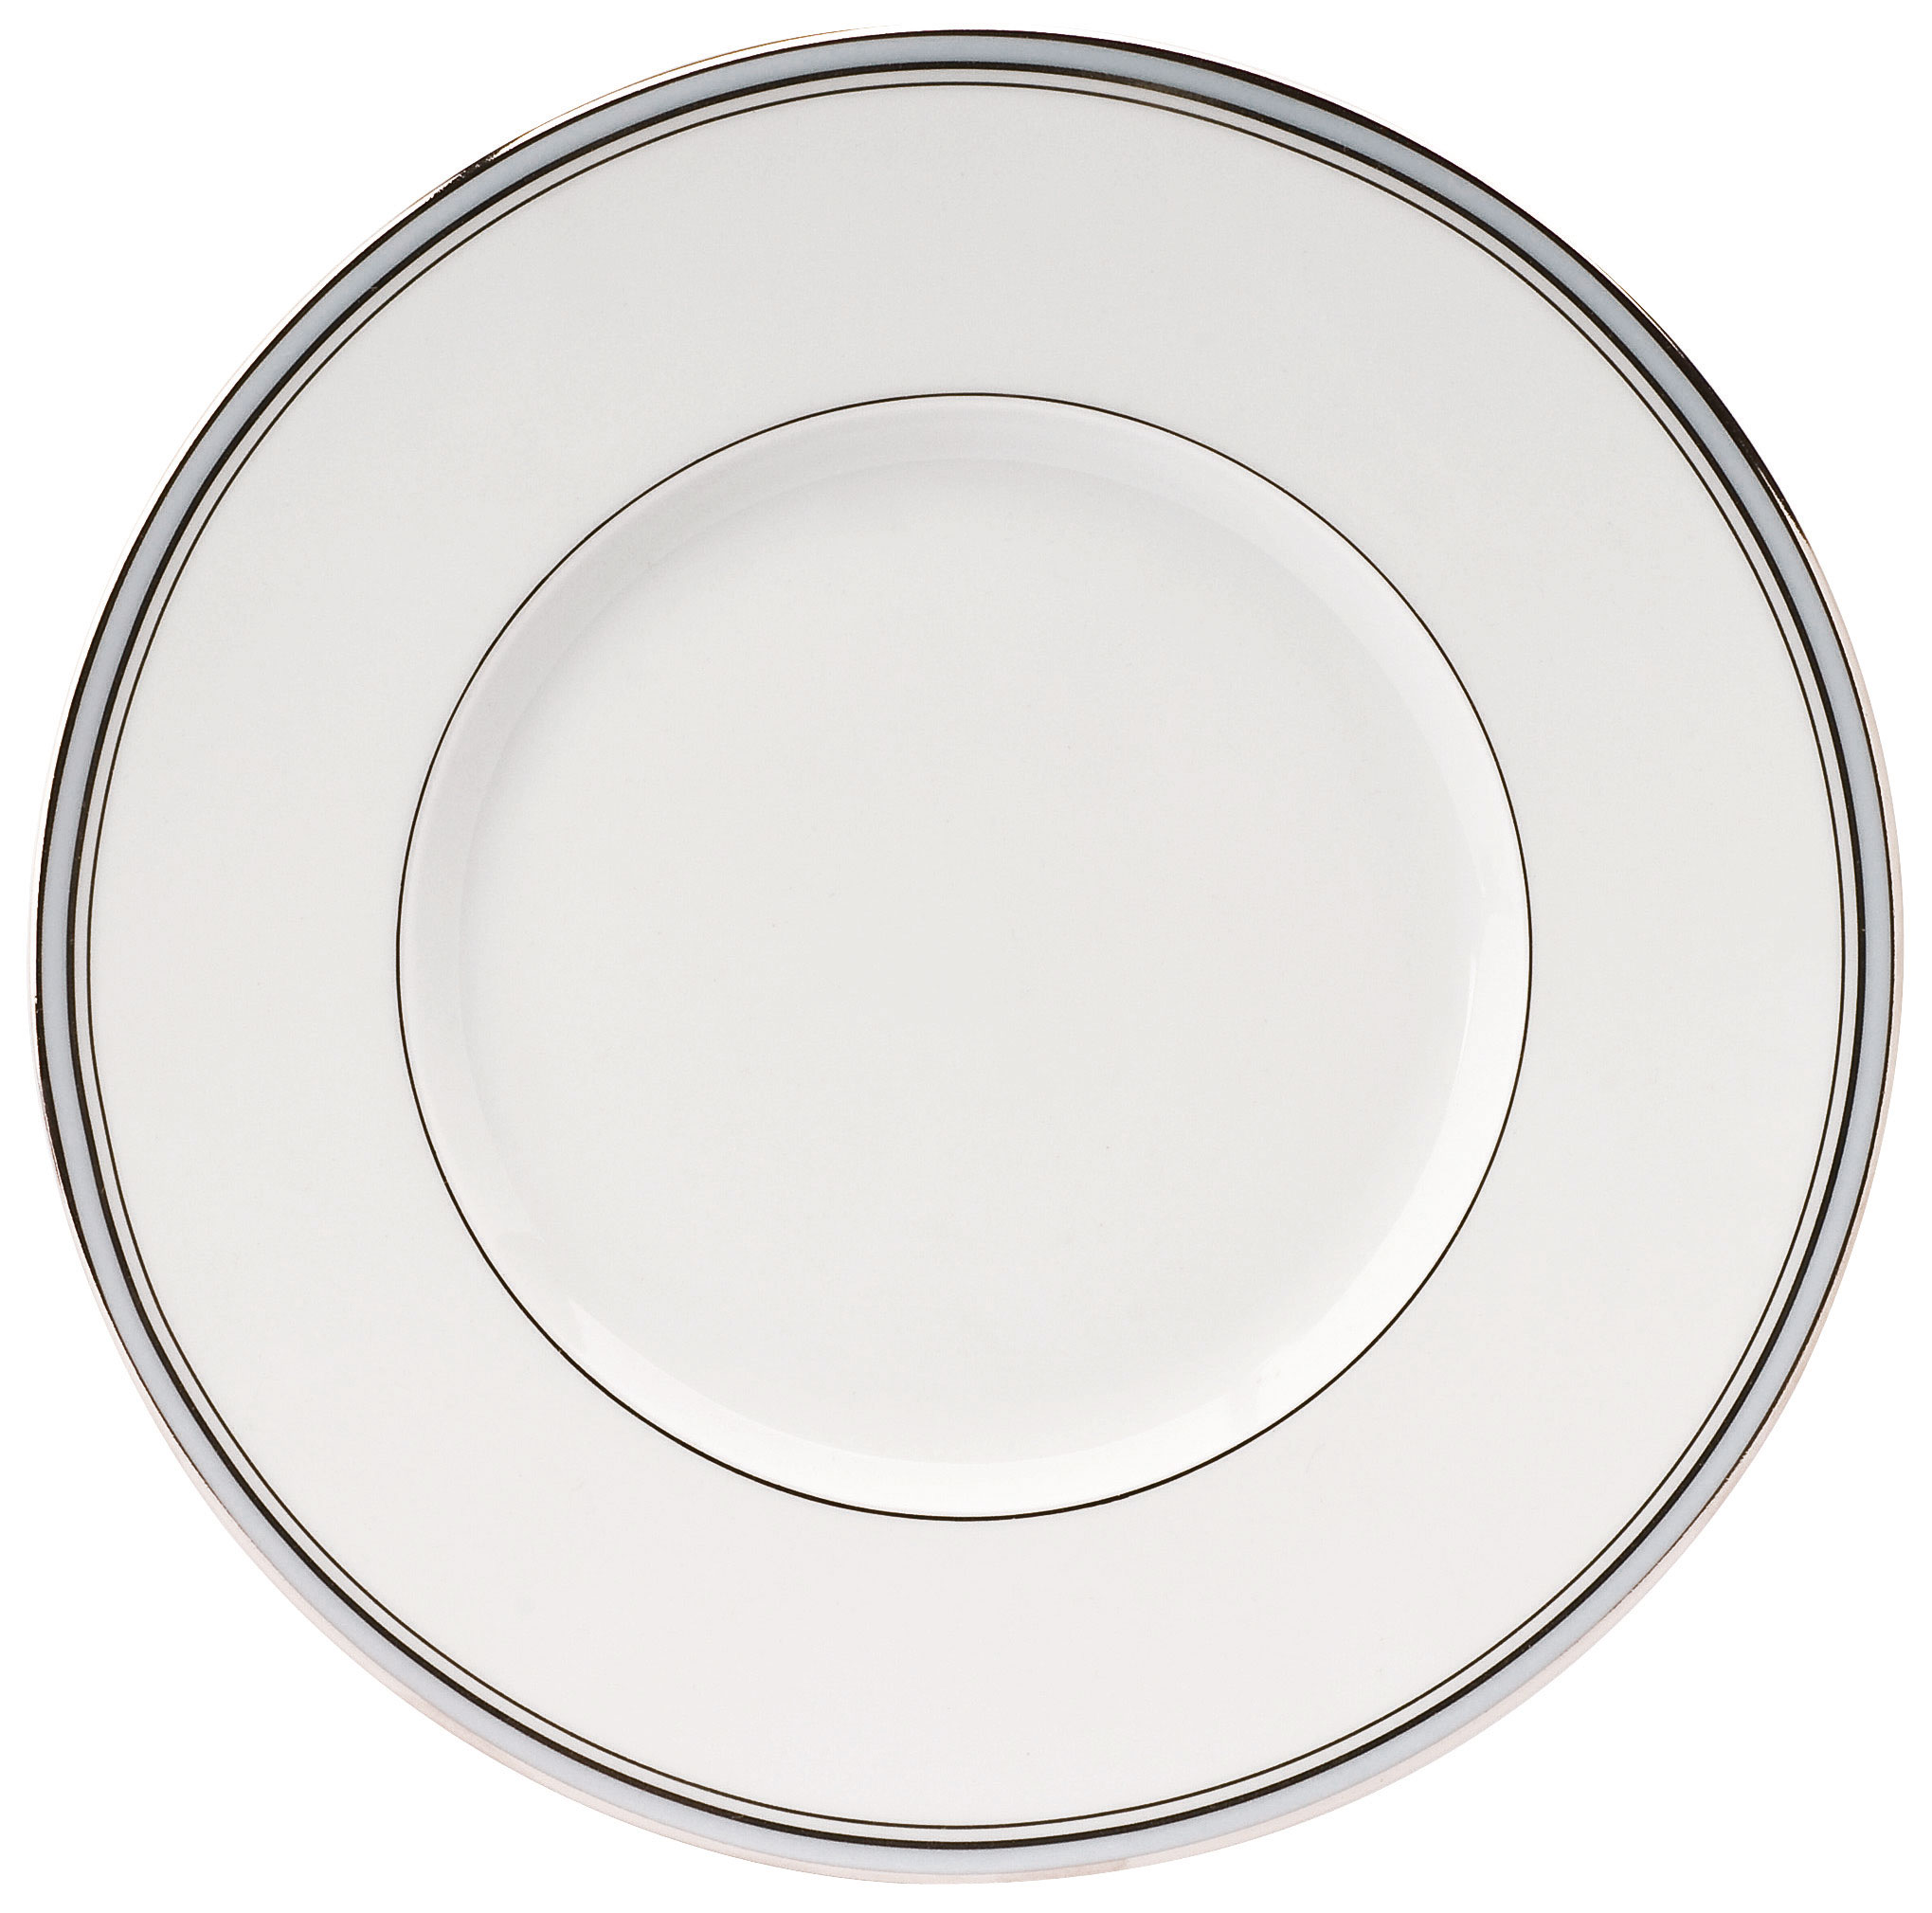 excellence dinner plate powder blue at the perfect present company